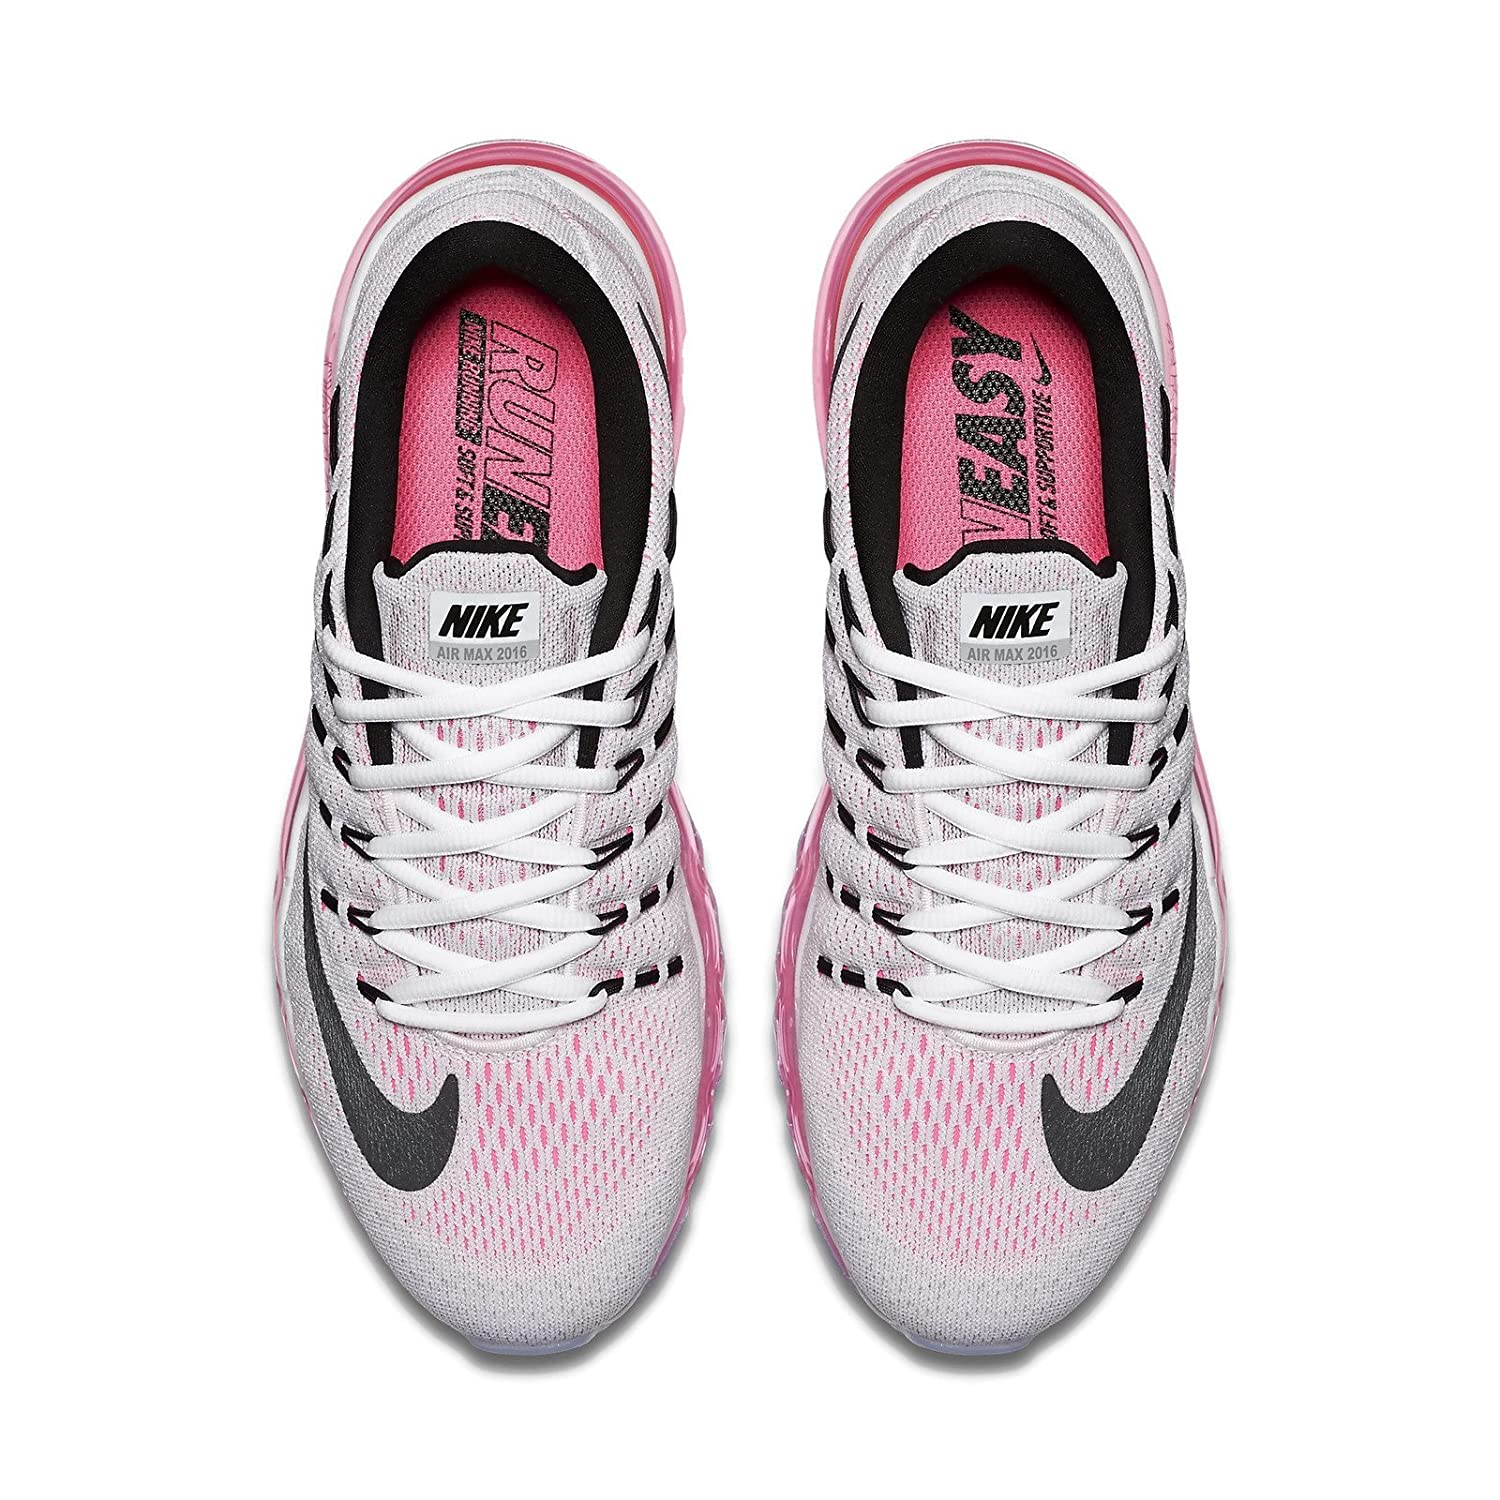 Nike Air Max 2017 De Color Rosa Canciones sDtDQ2GF